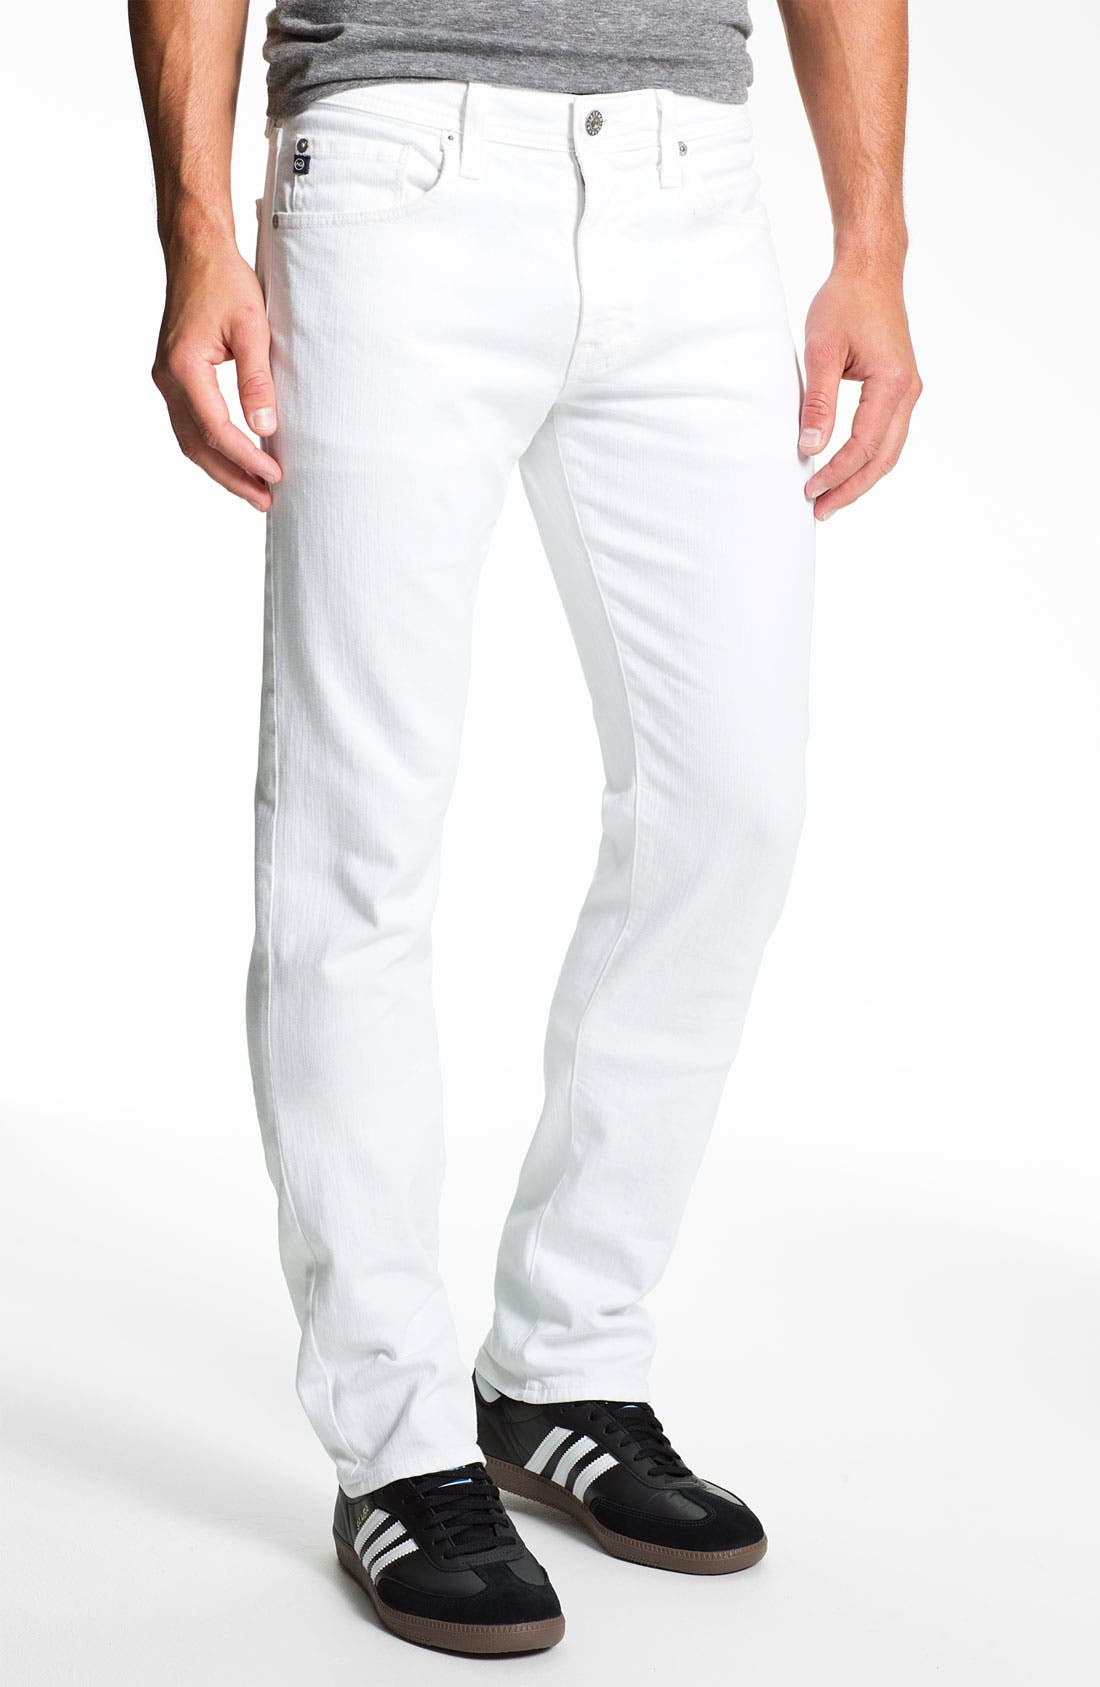 Alternate Image 1 Selected - AG Jeans 'Matchbox' Slim Fit Jeans (White)